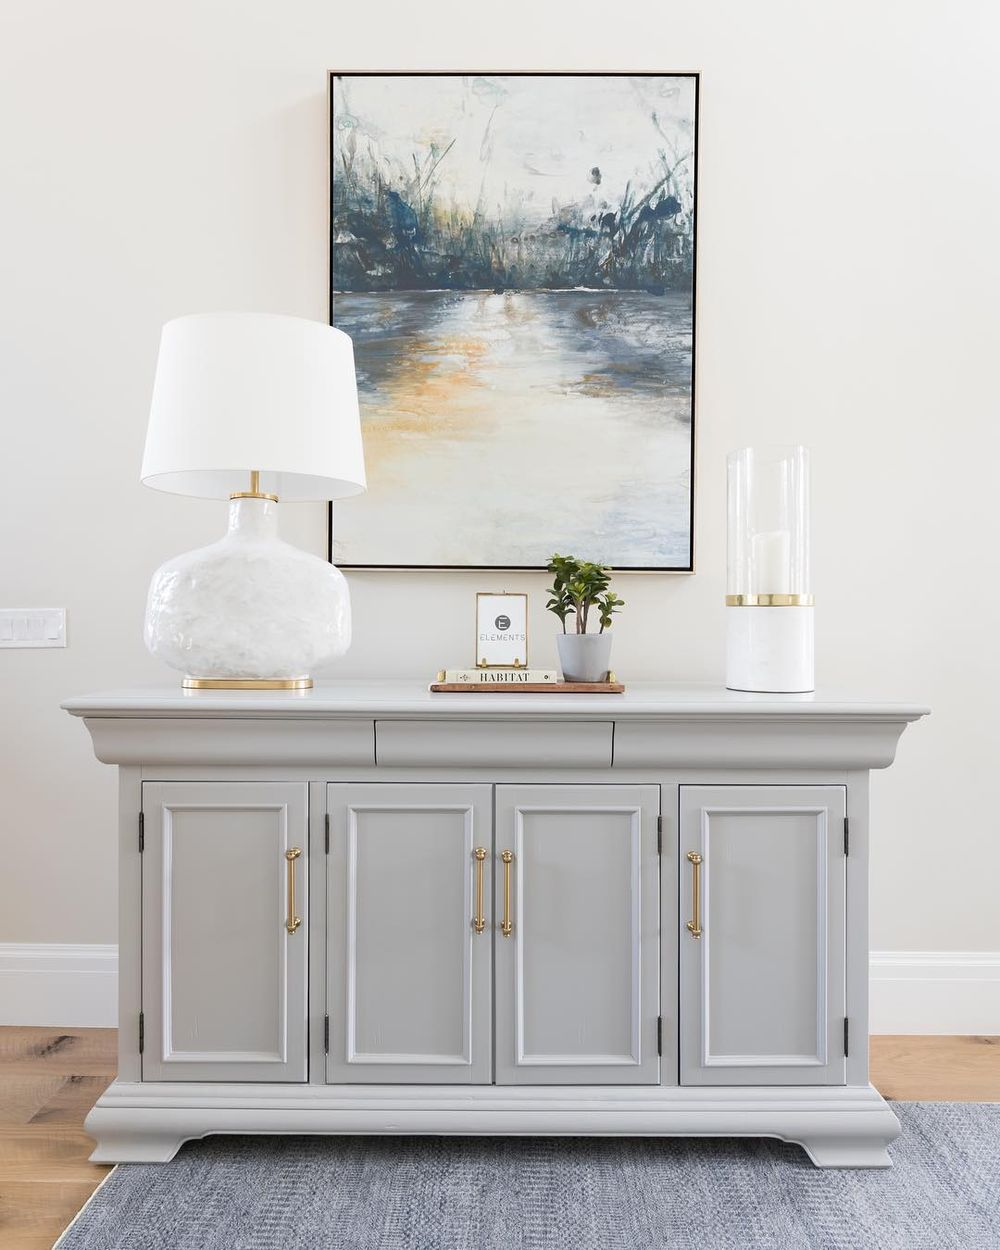 Console table by @remedy.design